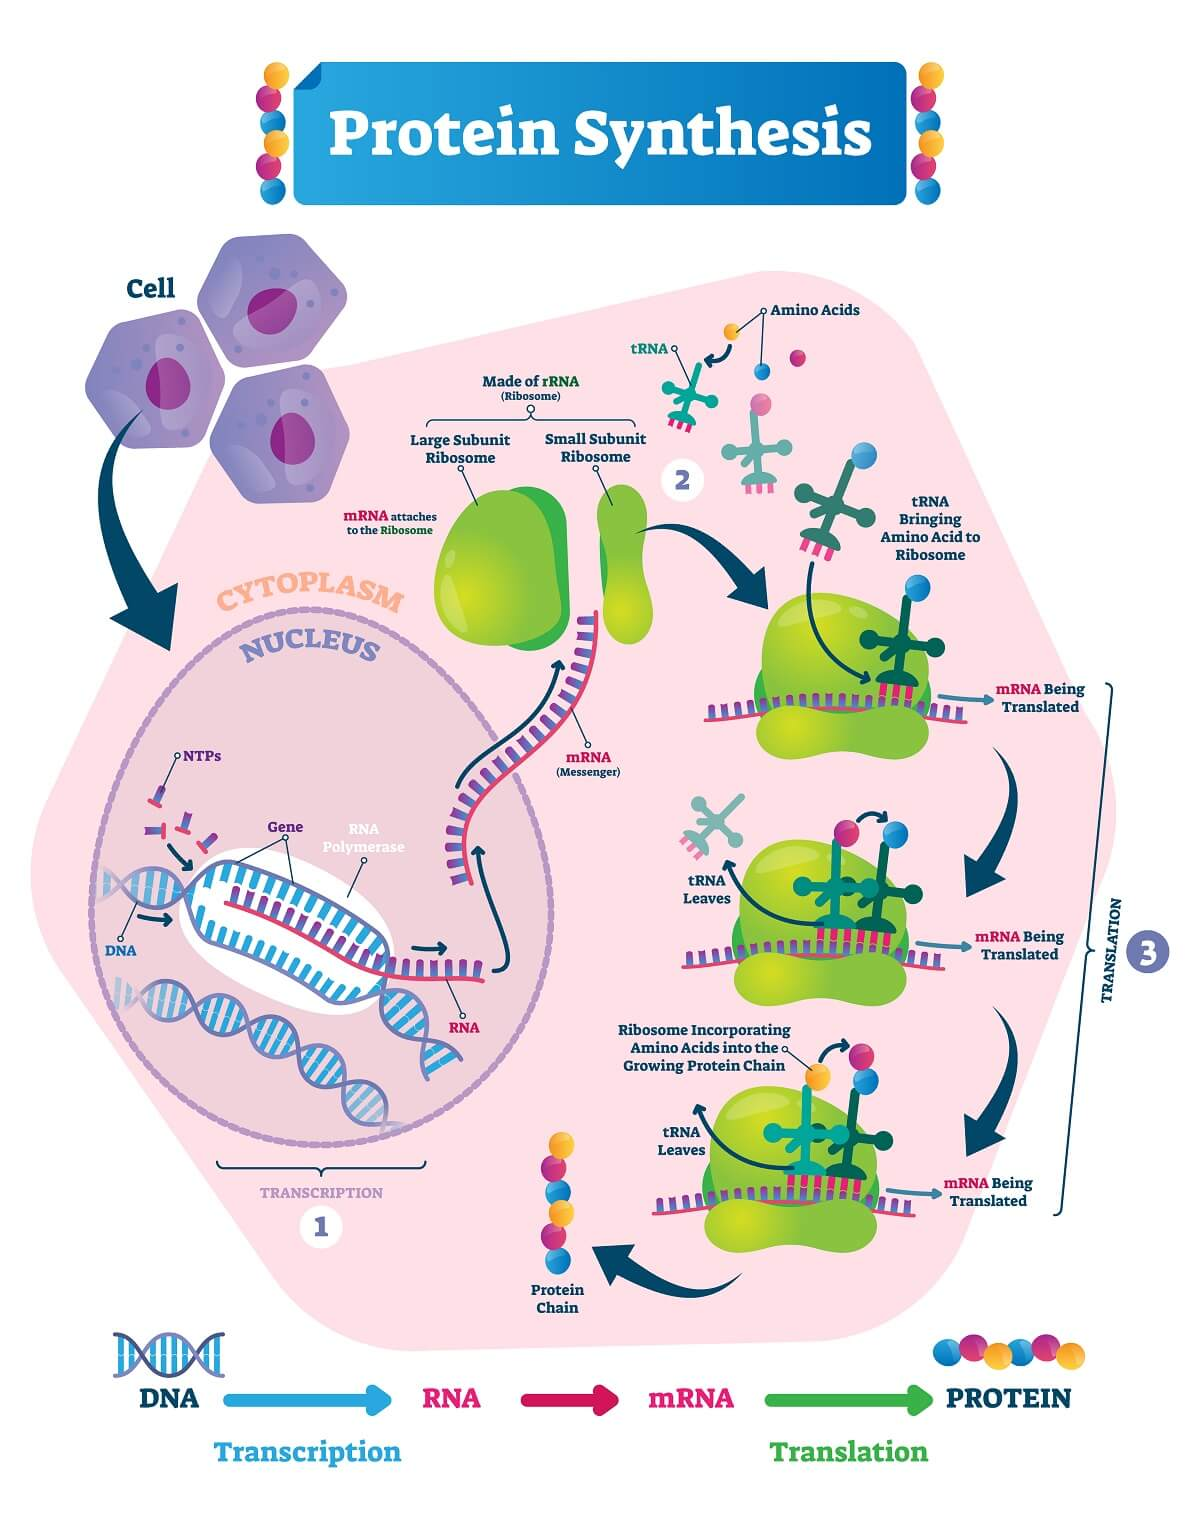 Any mutations in the process of protein synthesis can lead to issues in signal transduction